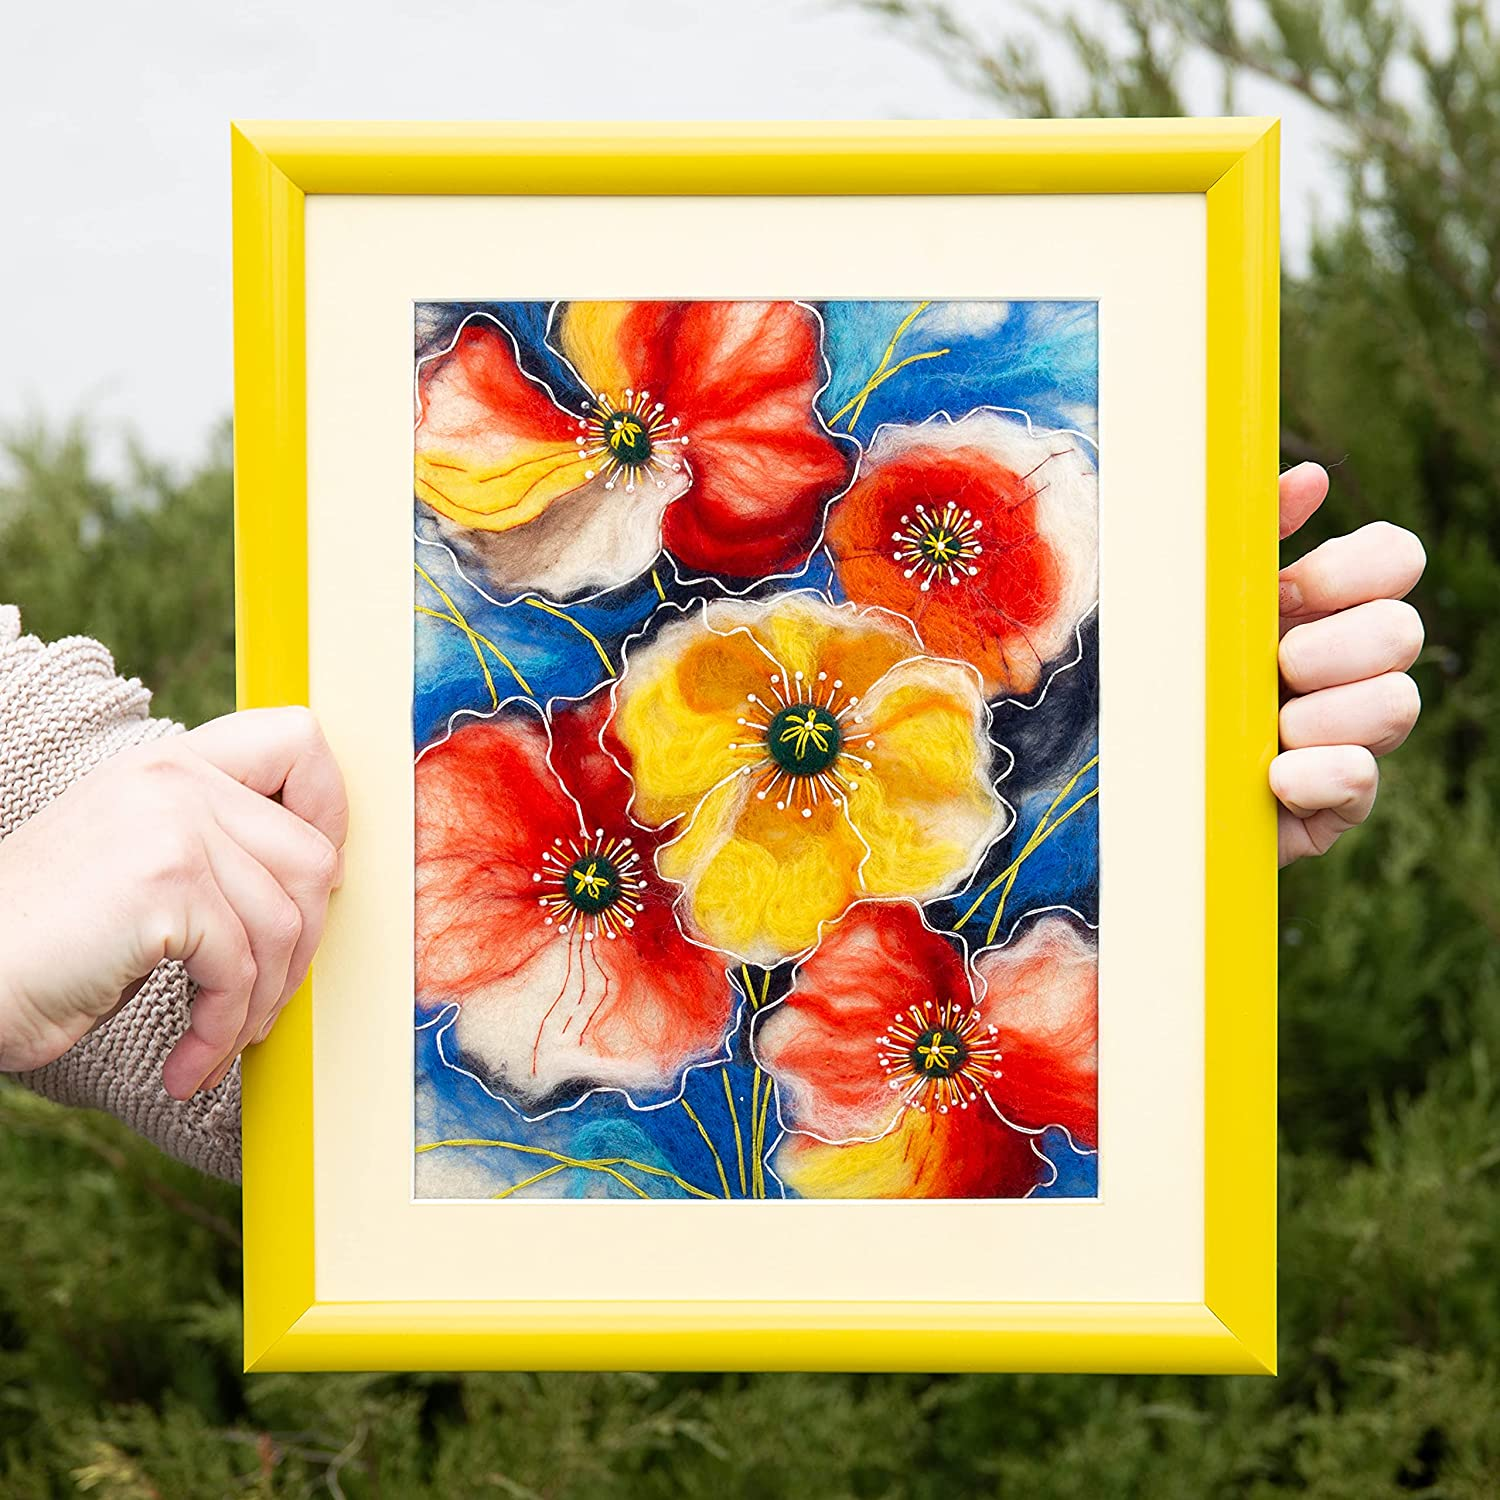 Poppy Flower Floral Popular product Needle Felting kit by Summer Poppies Charivn Max 74% OFF